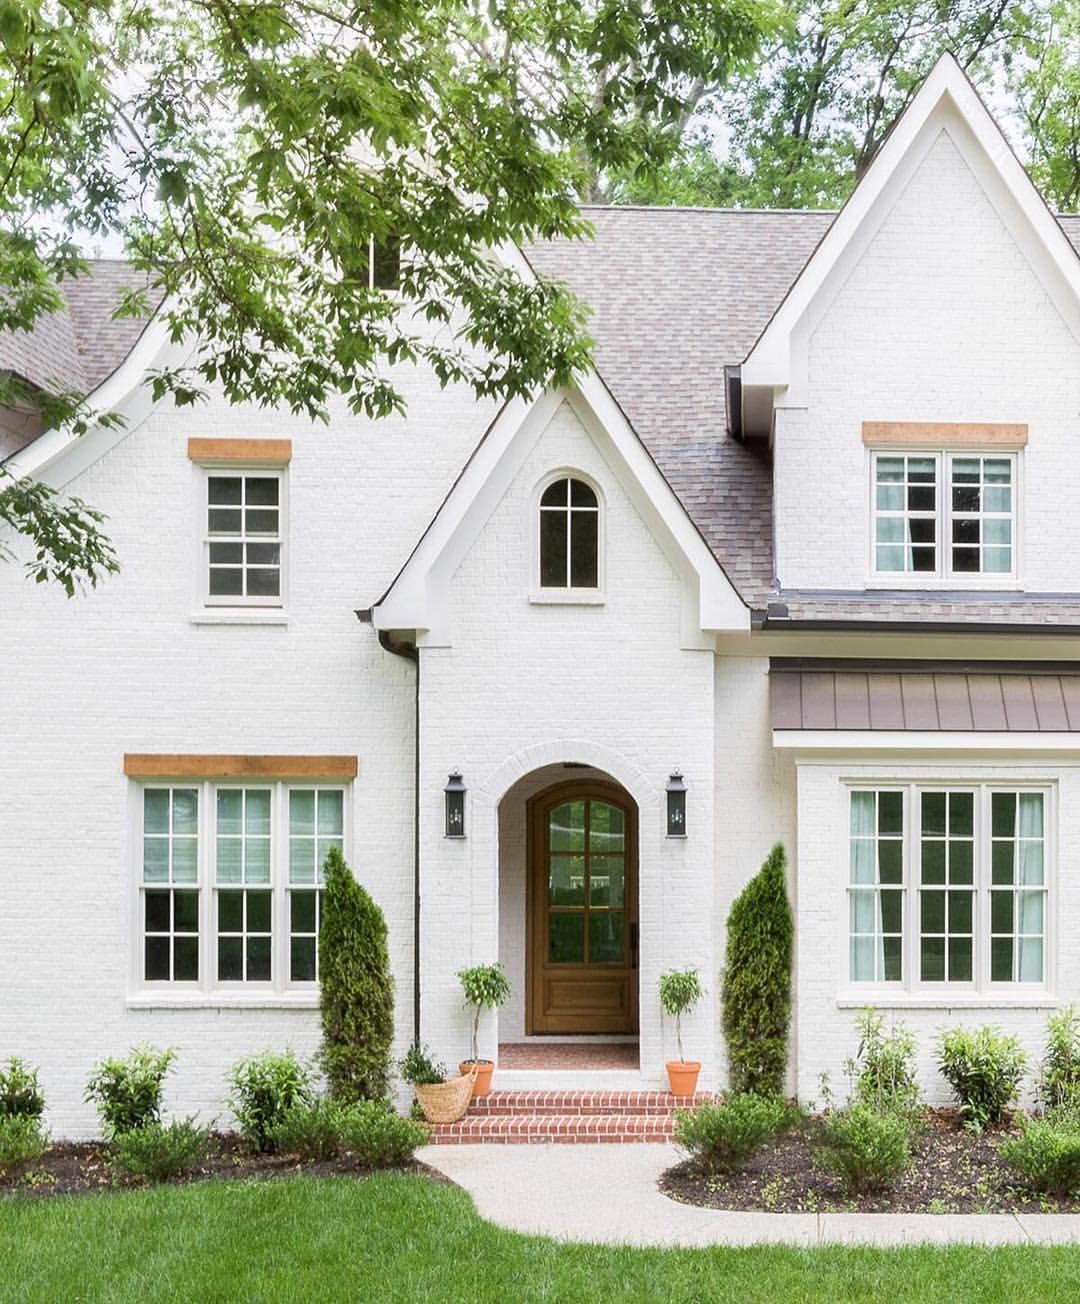 Absolutely Loving The Exterior Details Of This White Brick Home Don T You To See A Glimpse Inside This House Exterior House Designs Exterior Exterior Design